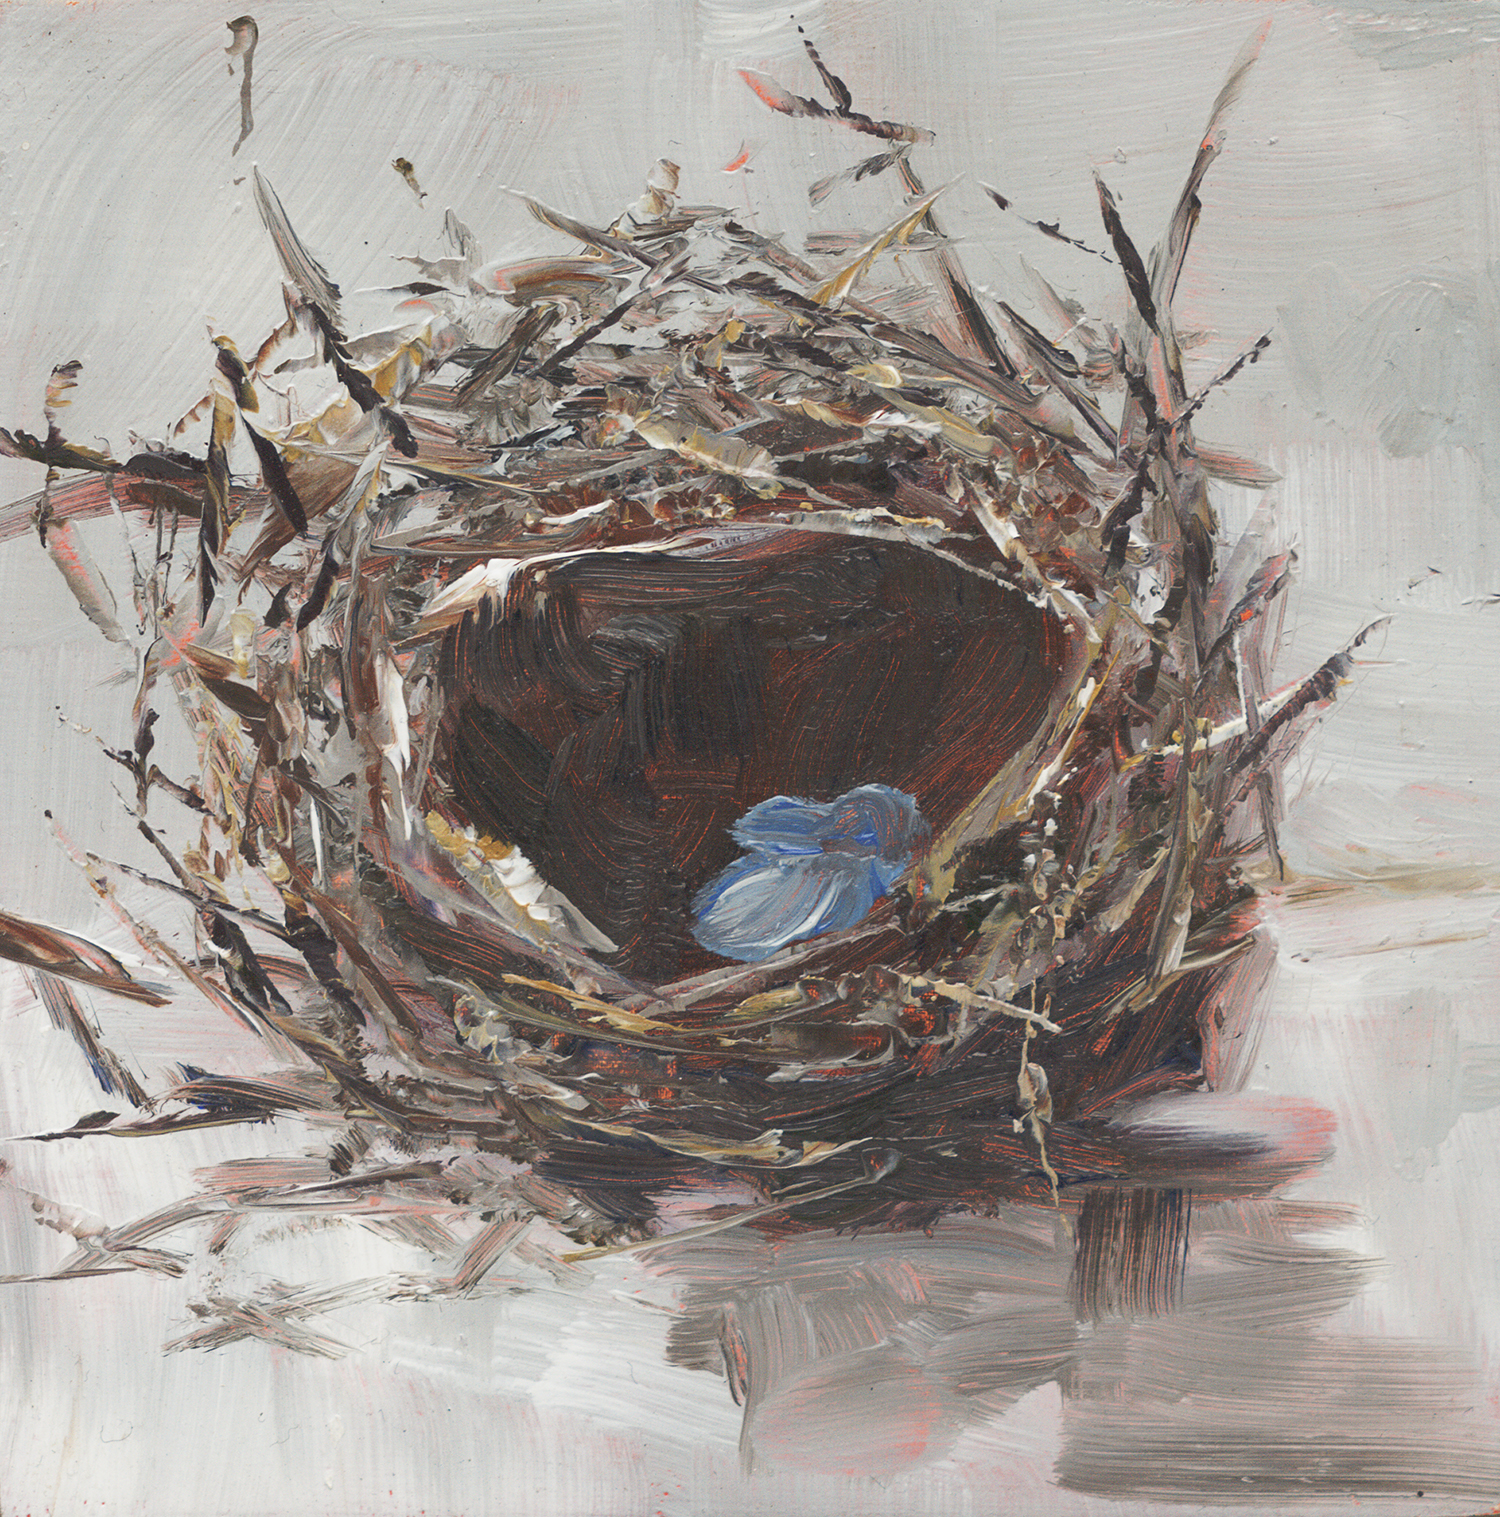 "Nesting Eggs - 4"" x 4"" x 1""D oil on cradled panel"